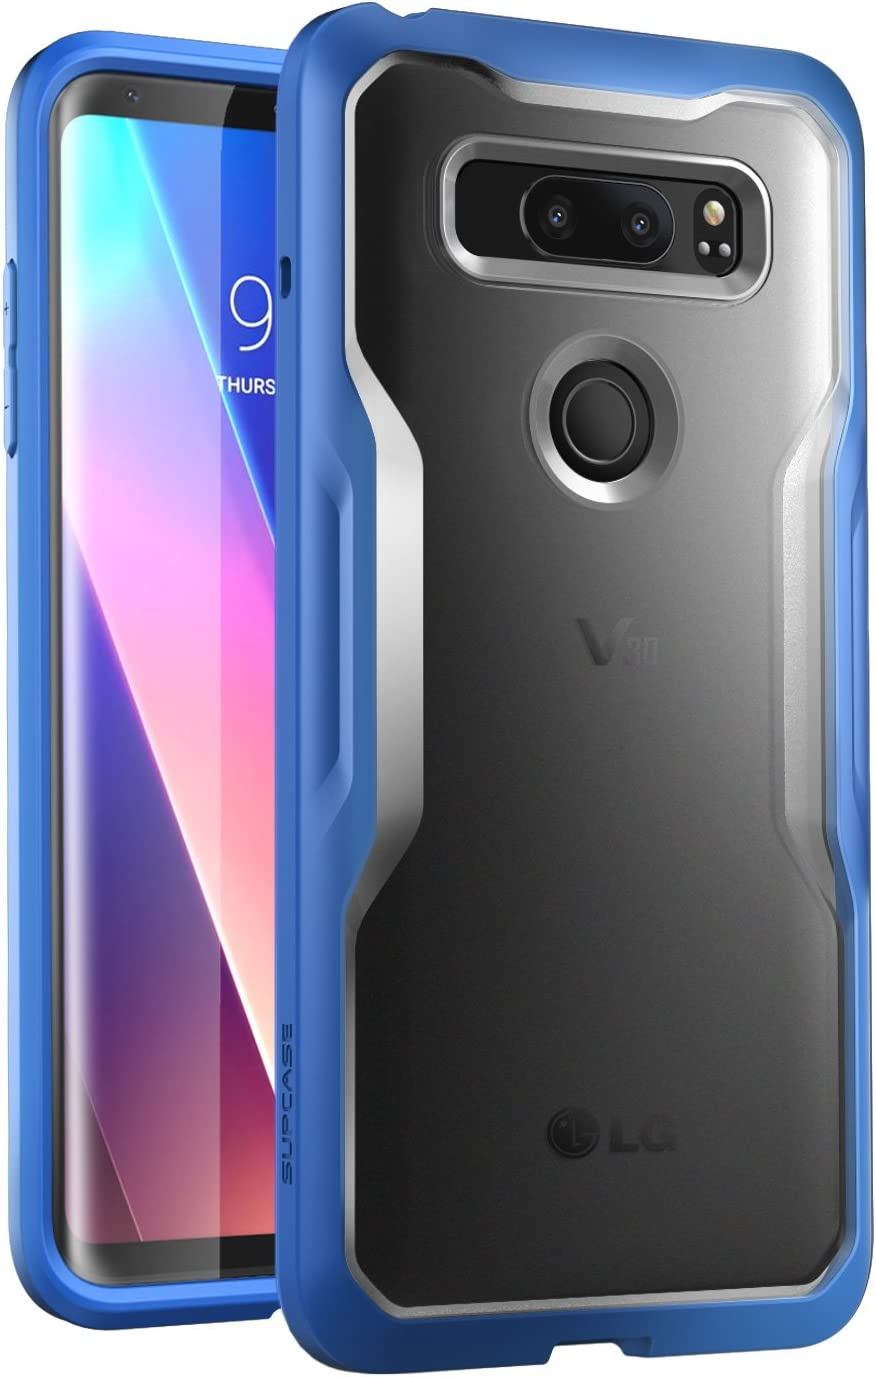 LG V30 Case, SUPCASE Unicorn Beetle Series Premium Hybrid Protective Clear Case for LG V30, LG V30s, LG V30 Plus 2017 Release, Retail Package(Frost/Navy)